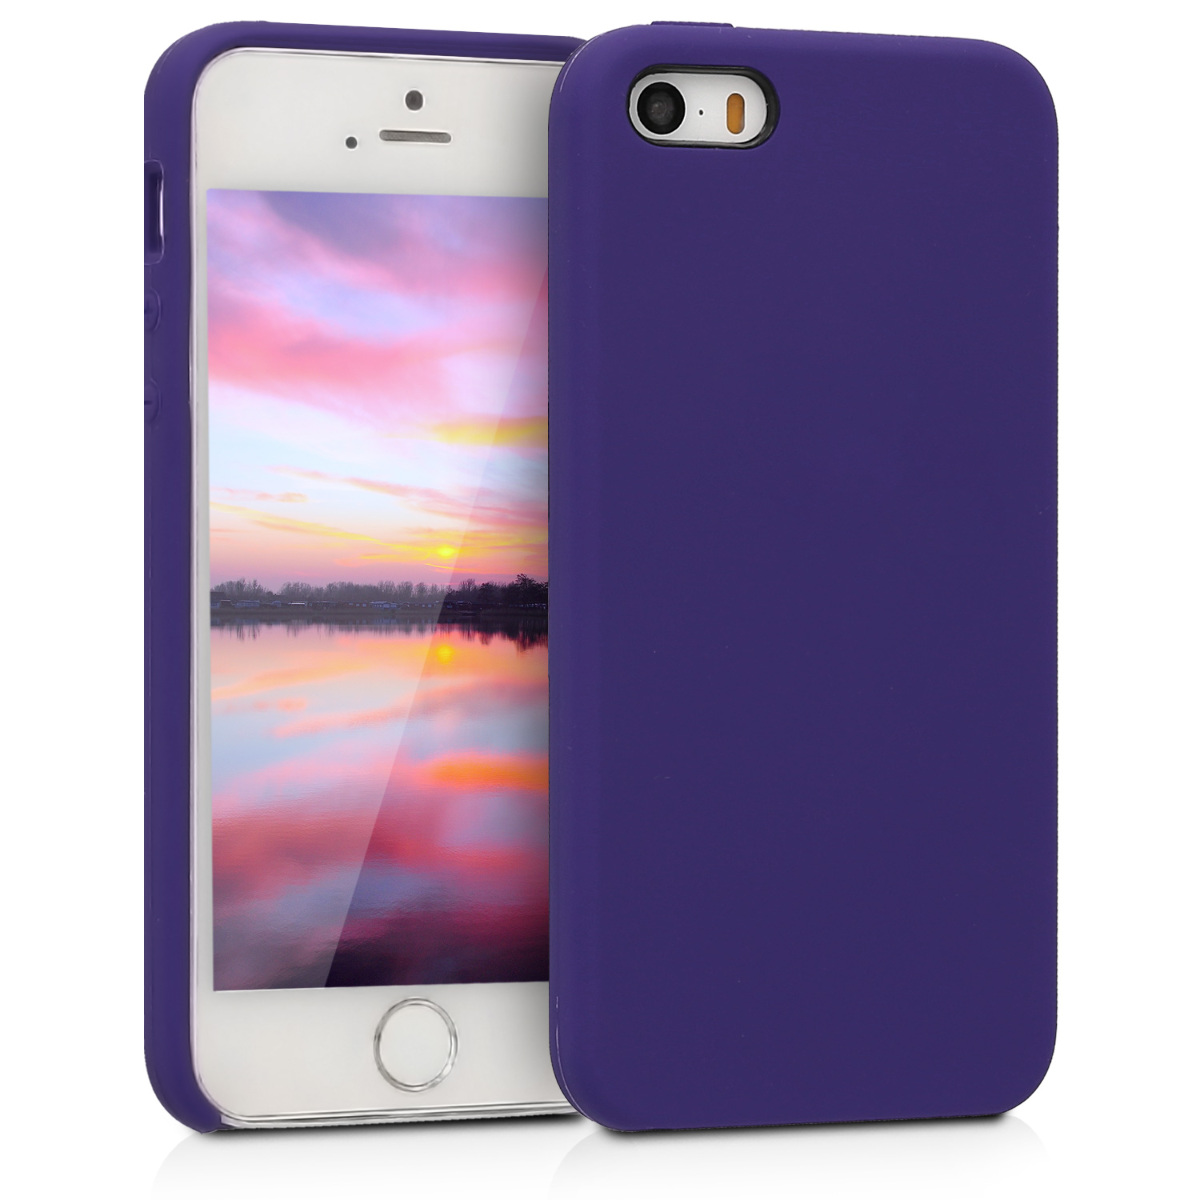 KW Θήκη Σιλικόνης iPhone SE / 5 / 5S - Soft Flexible Rubber Protective Cover - Violet - (42766.38)